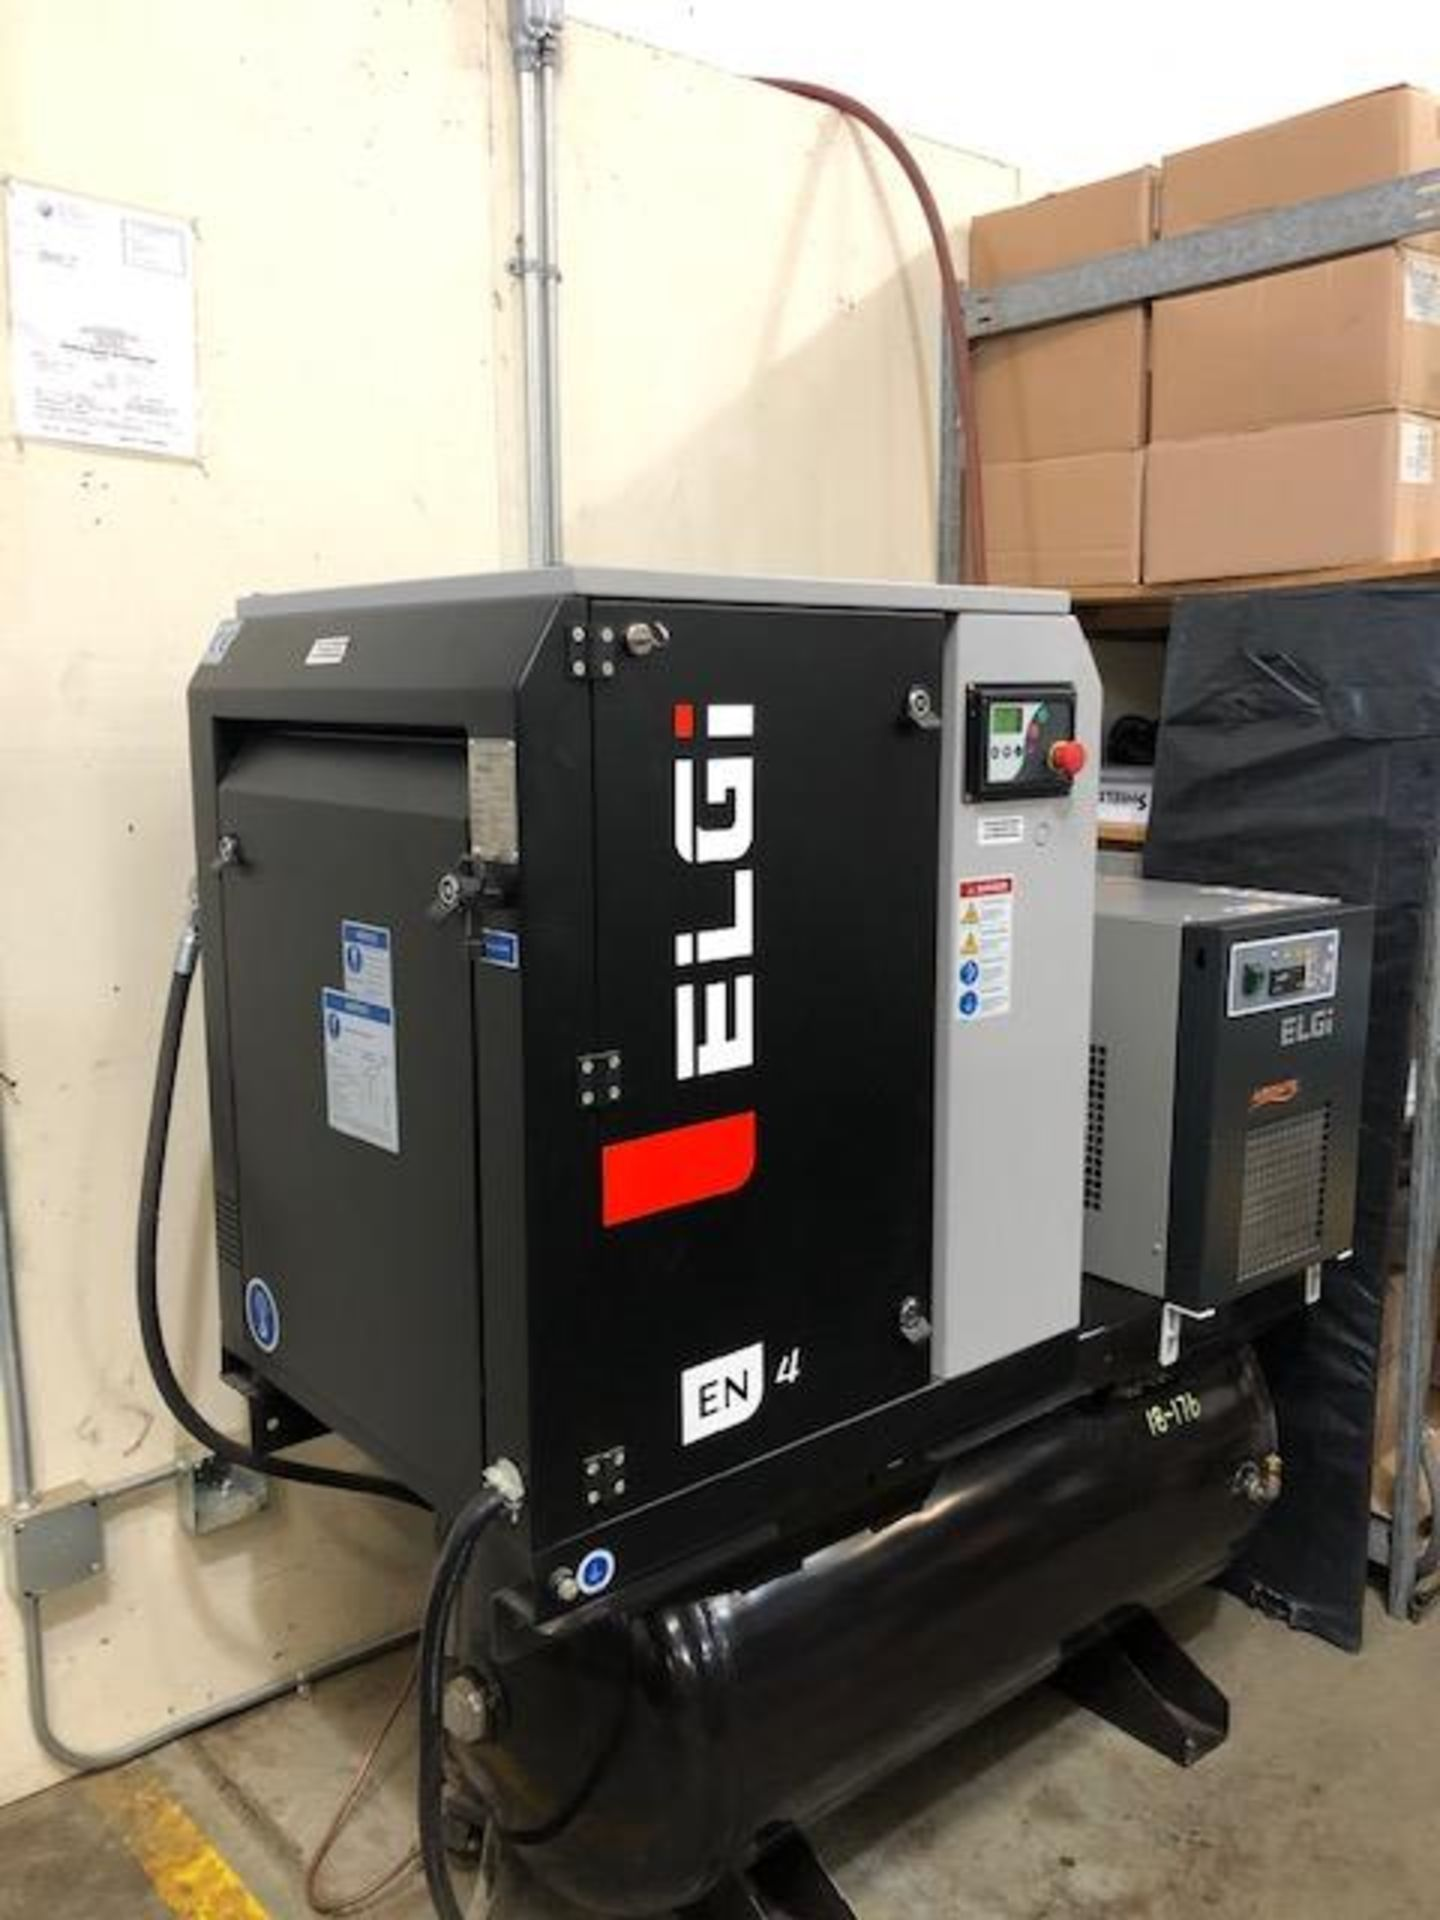 Used-Green Vault Systems Precision Batcher for Batching & Packaging Flower w/ Air Compressor - Image 8 of 23